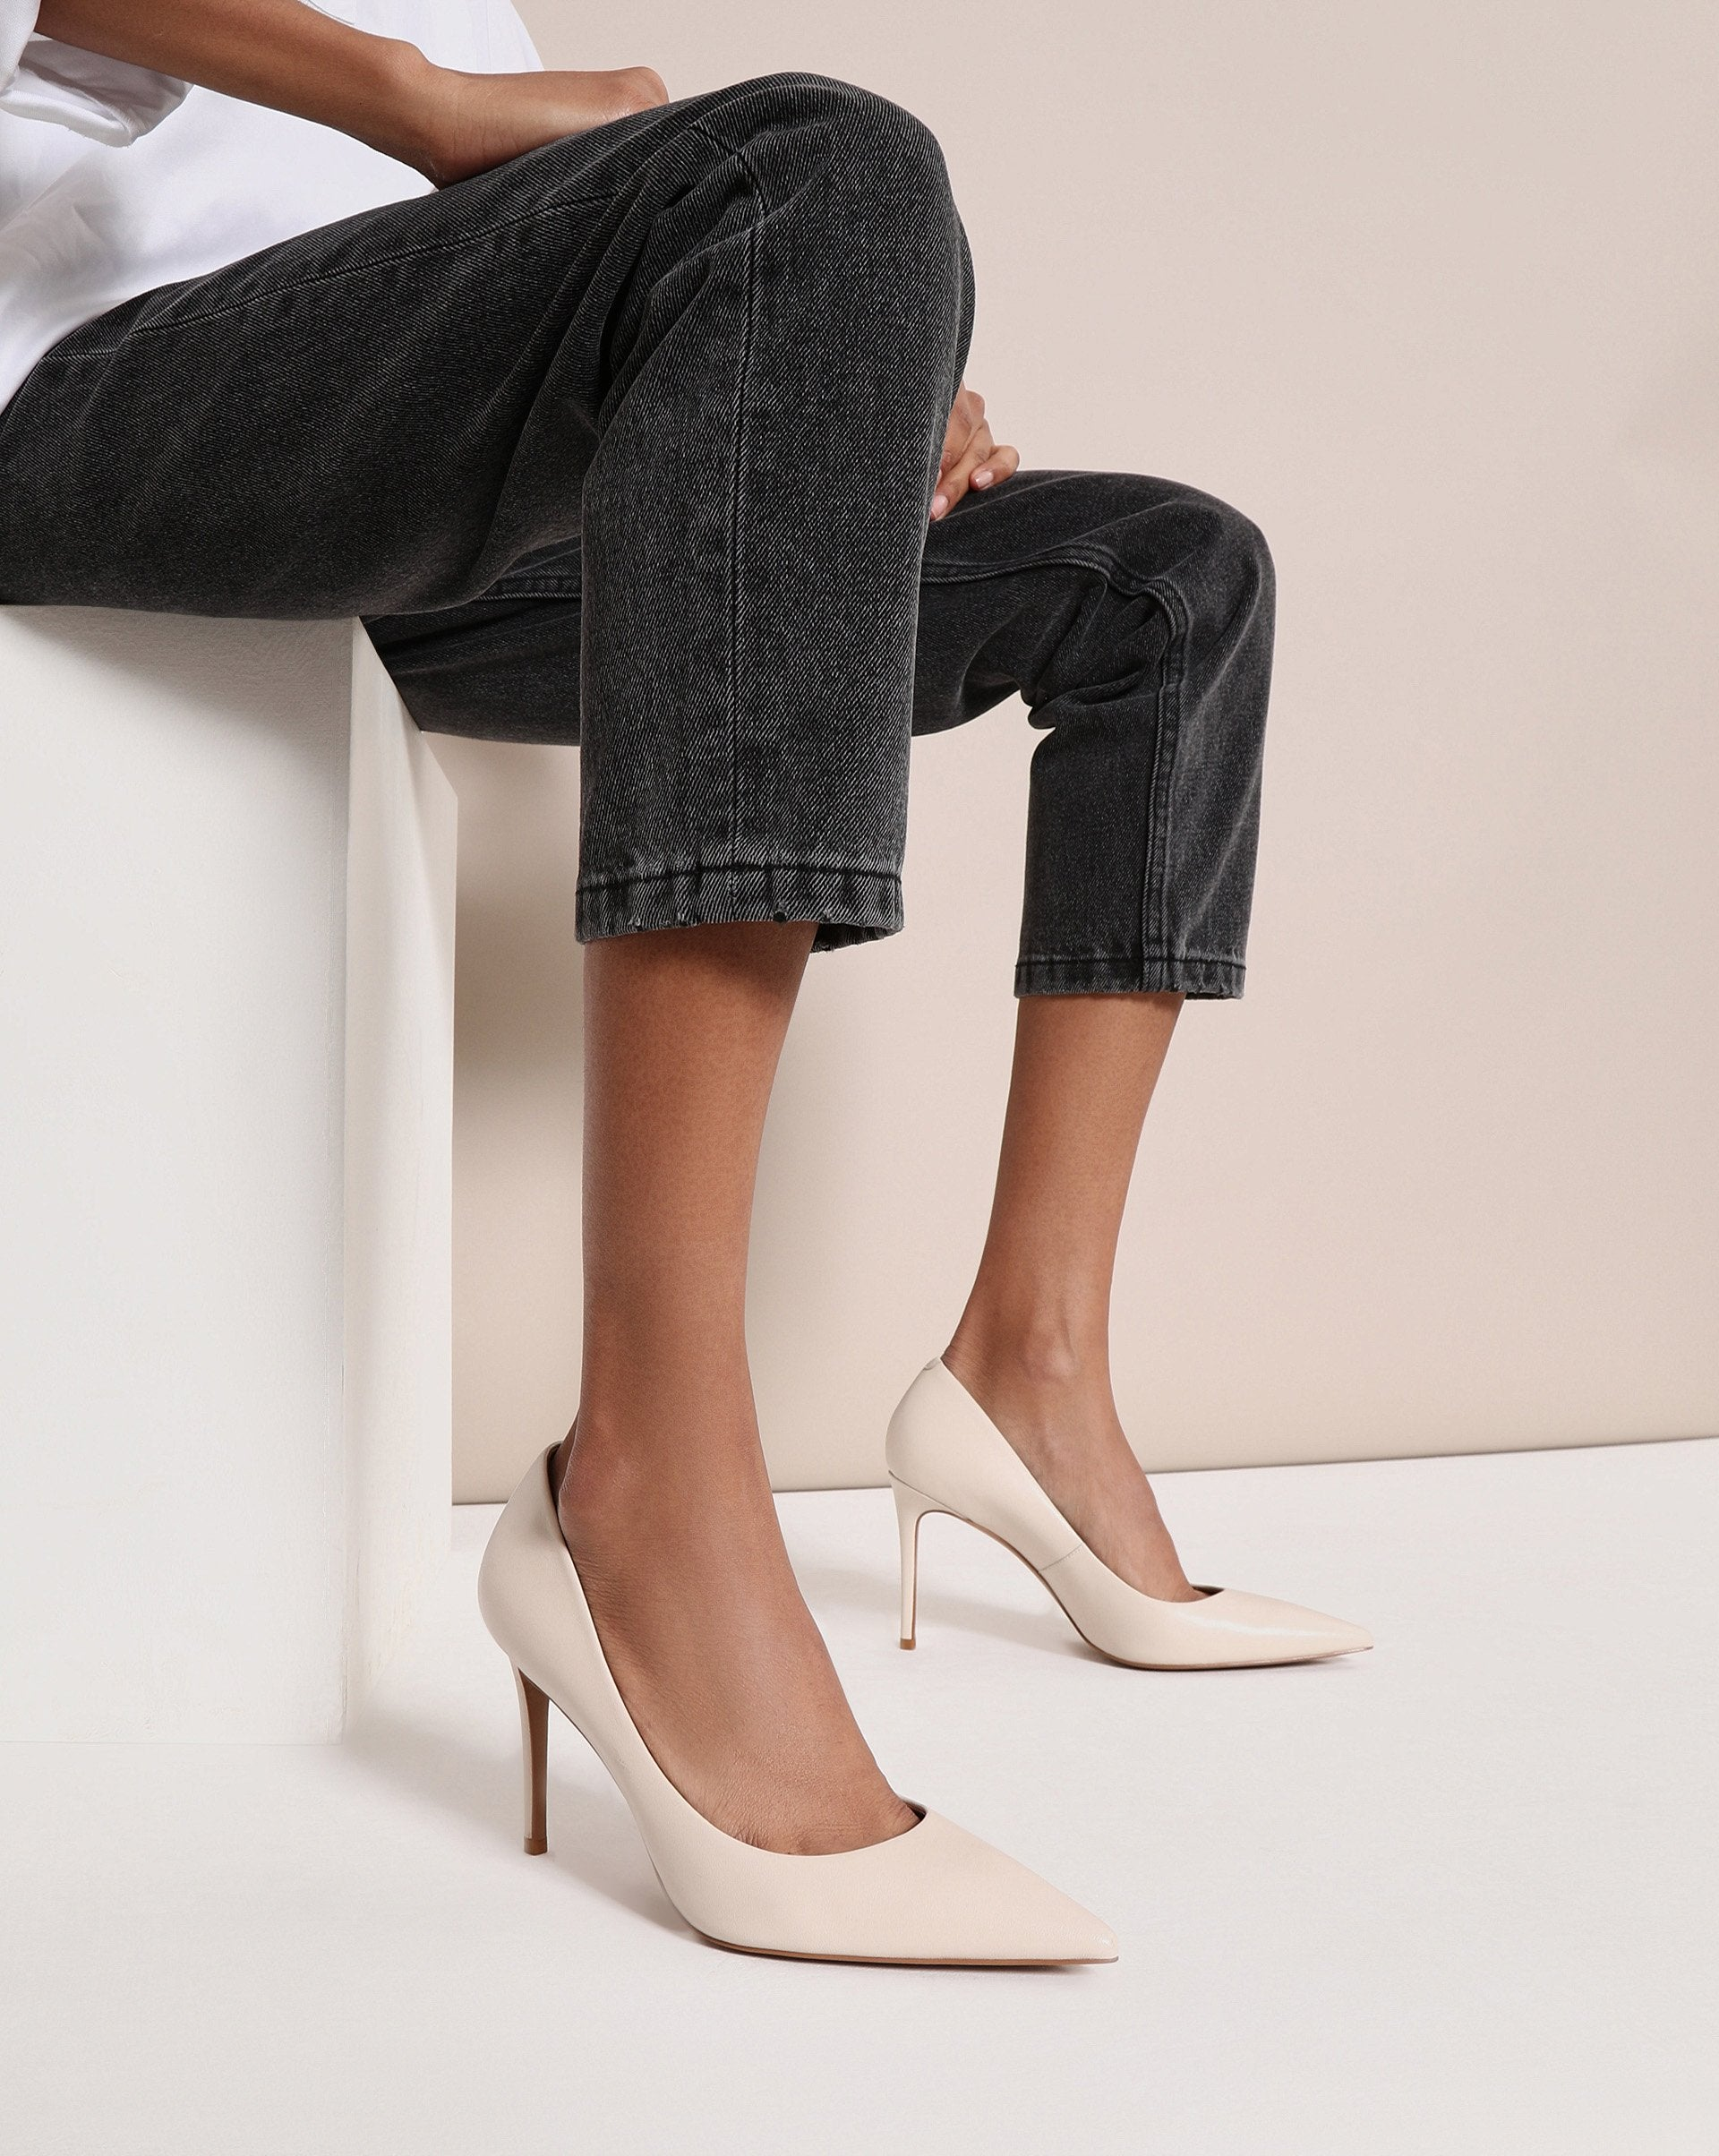 Pointed toe leather pumps - 12 STOREEZ